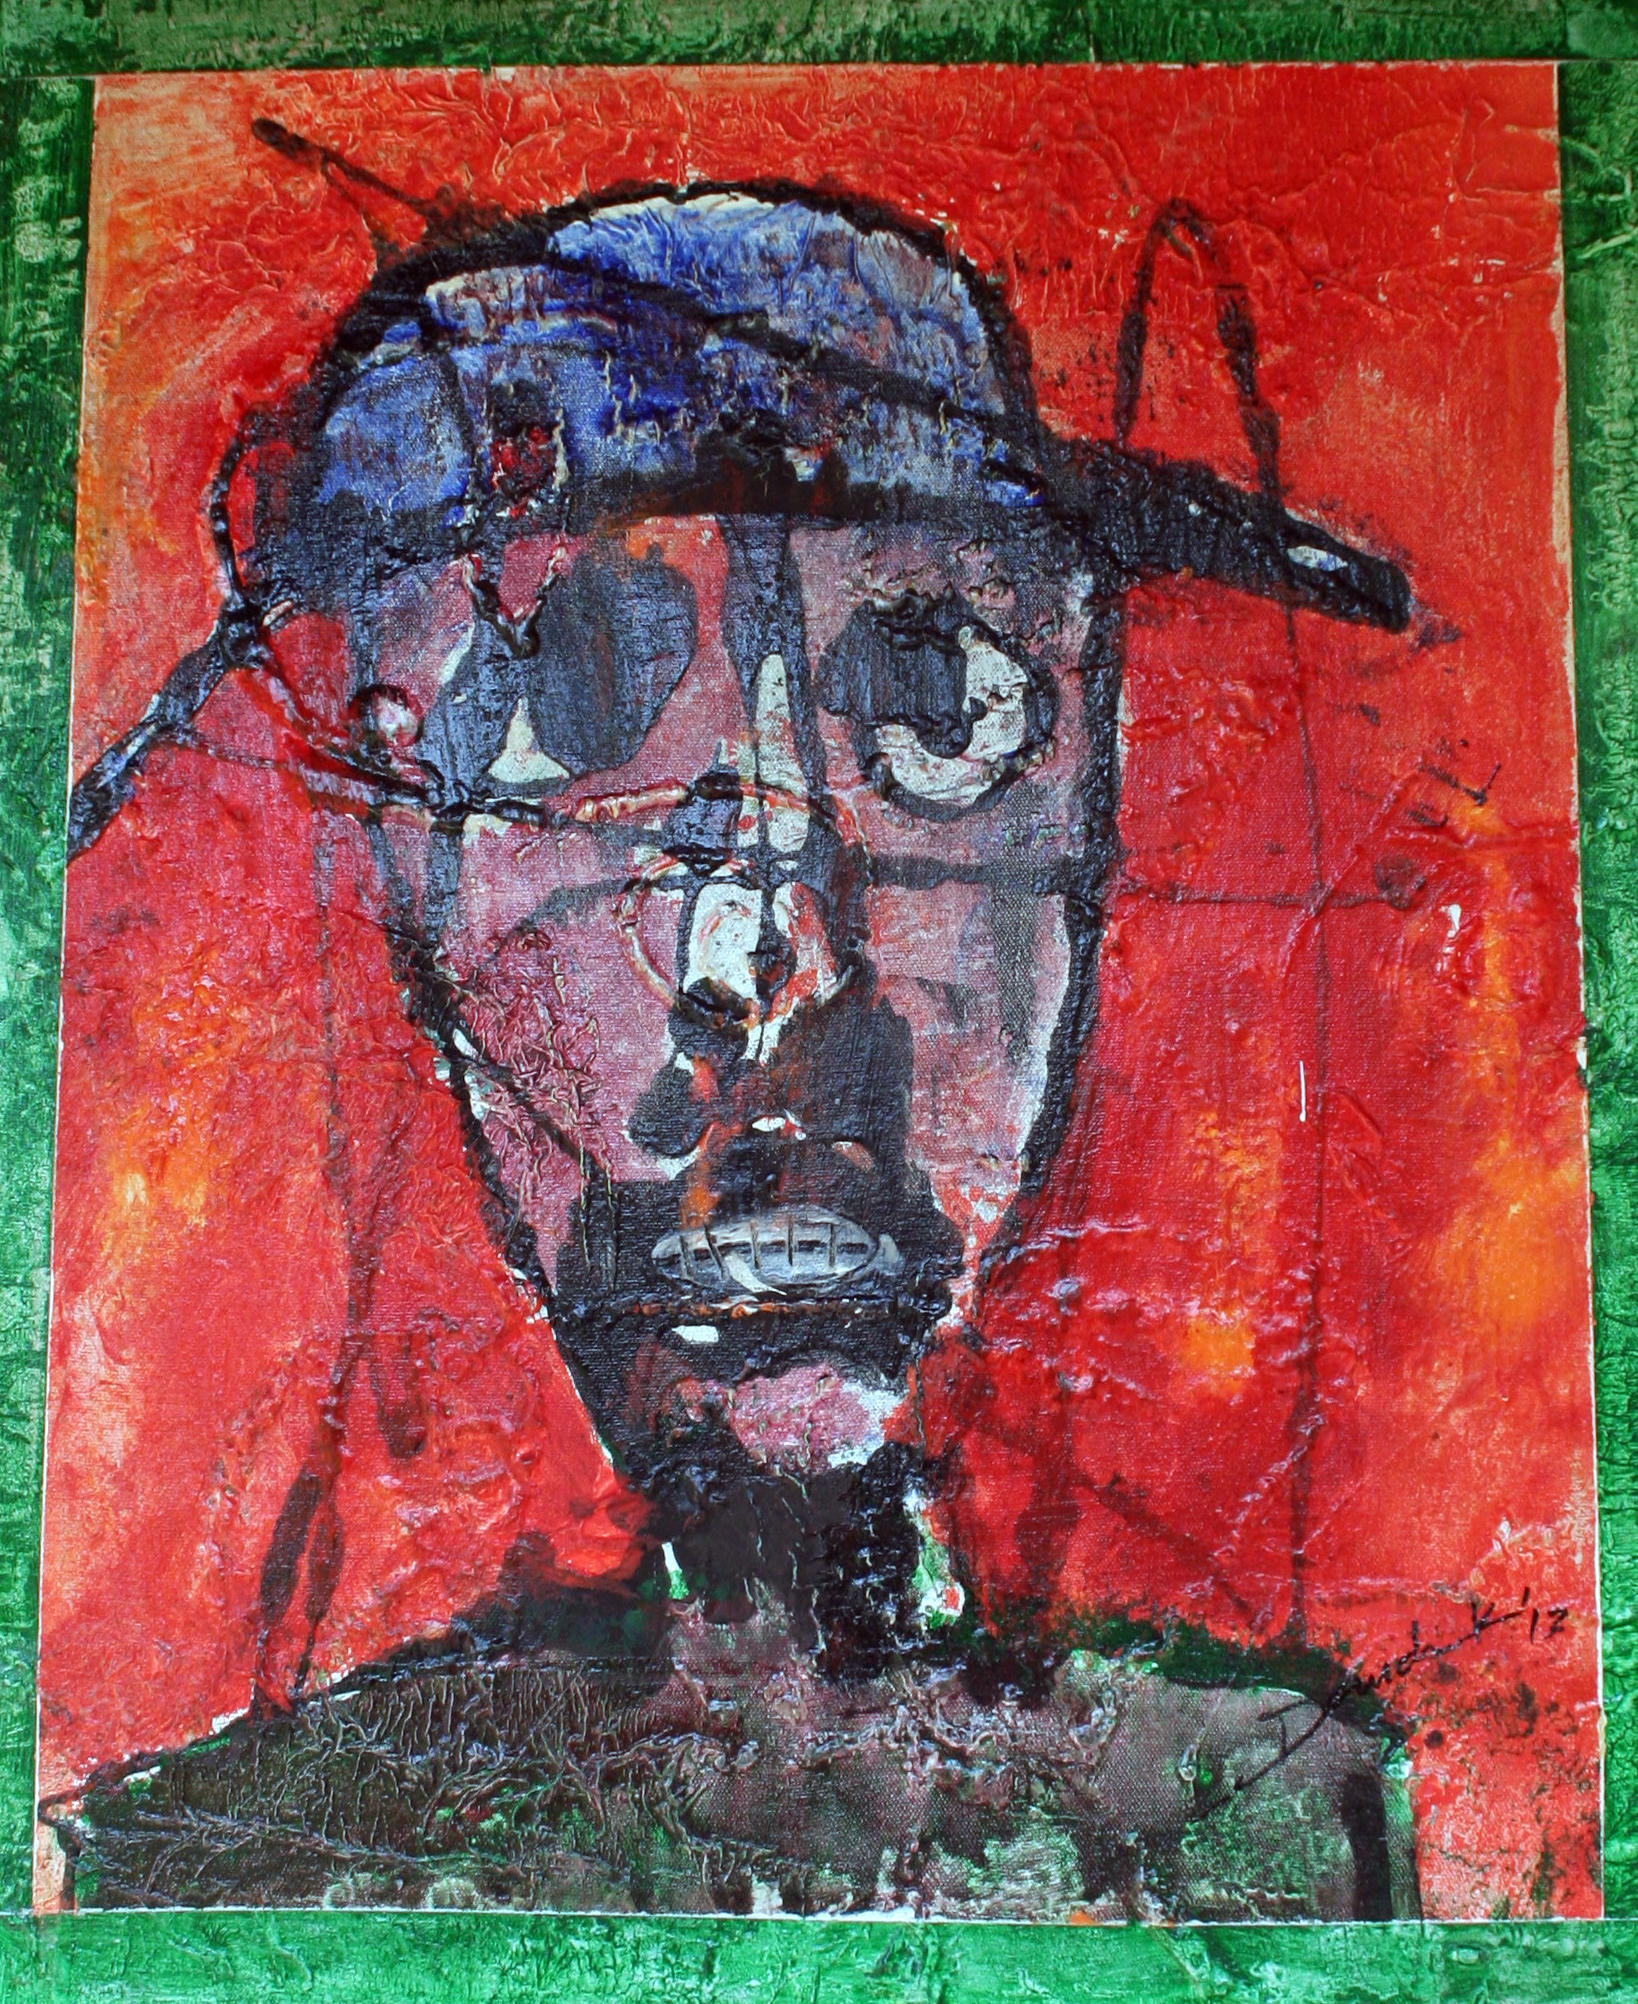 Man with the Hat by Daudi Karungi